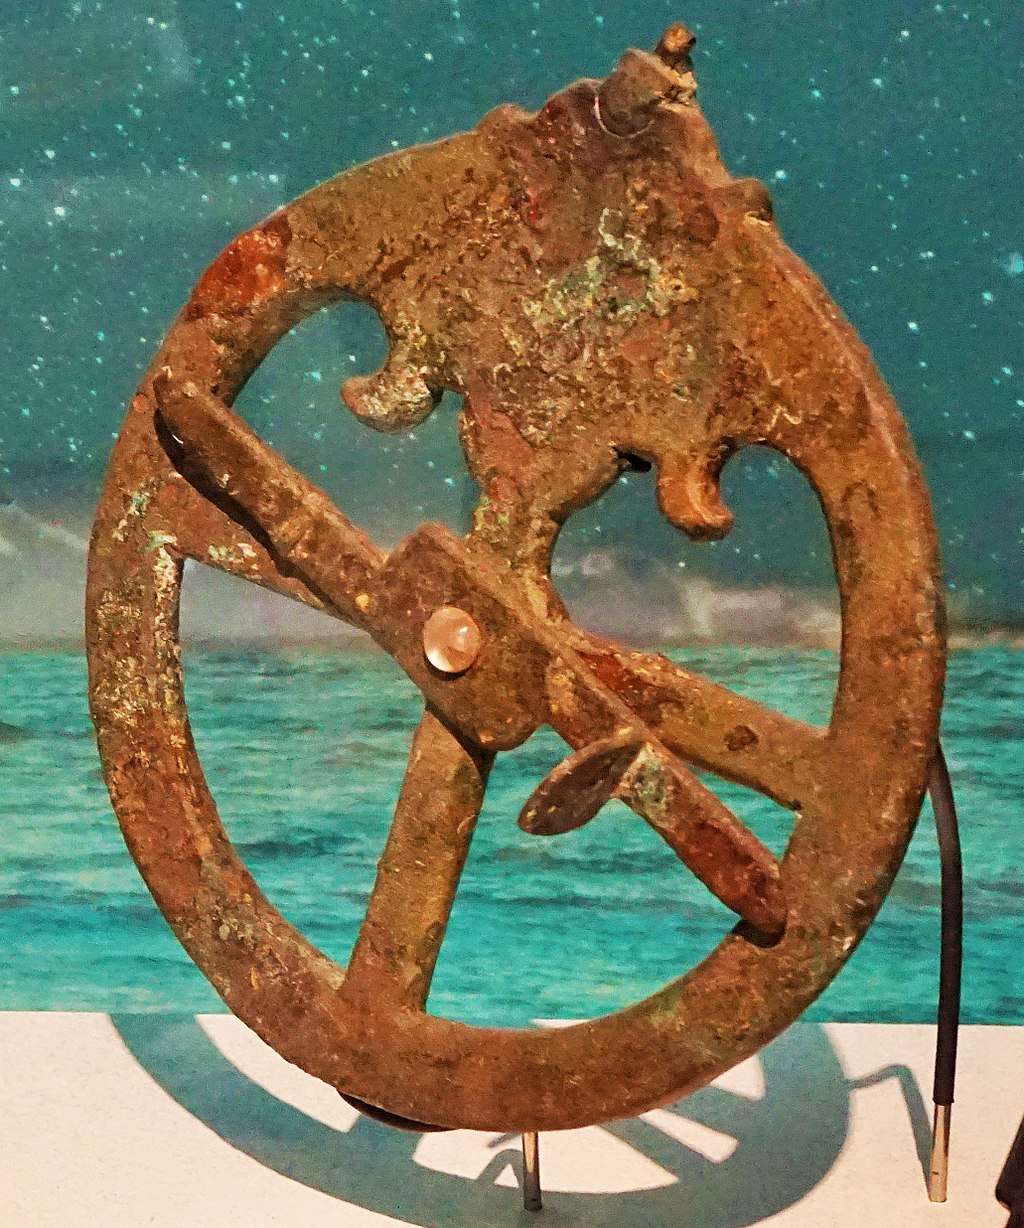 Mariner's Astrolabe from the Vergulde Draeck